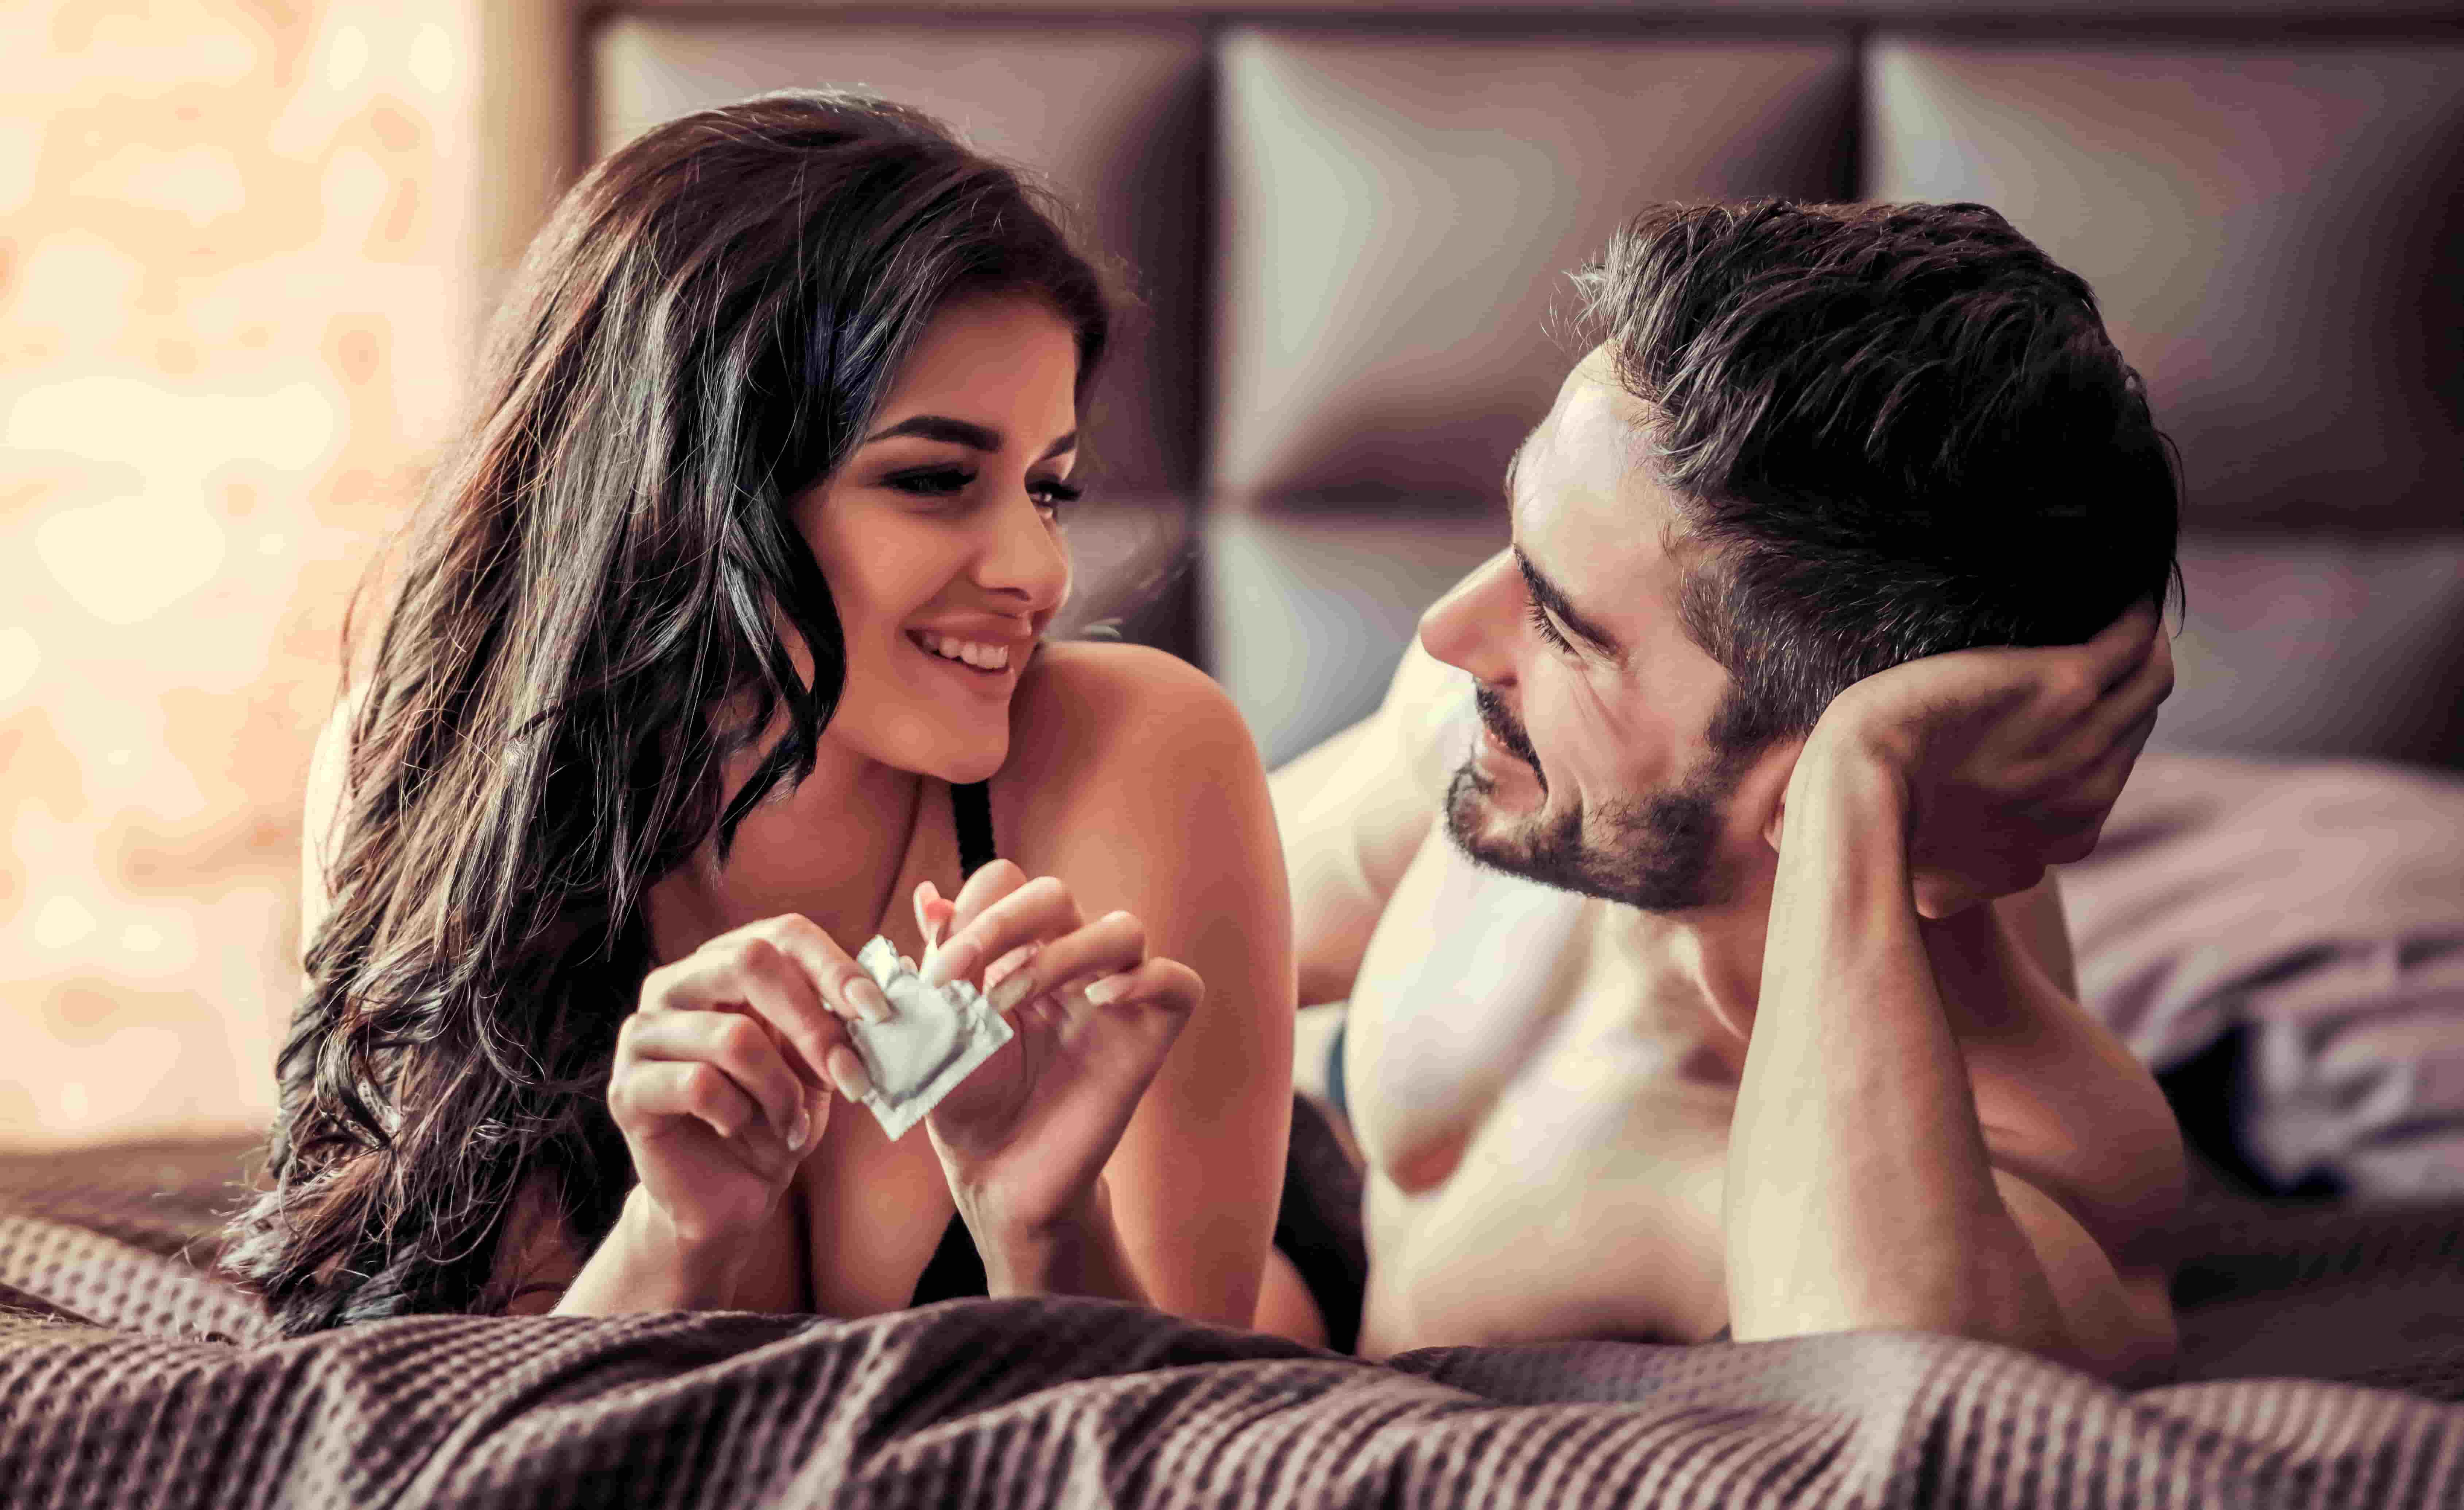 man and woman in bed woman holding condom